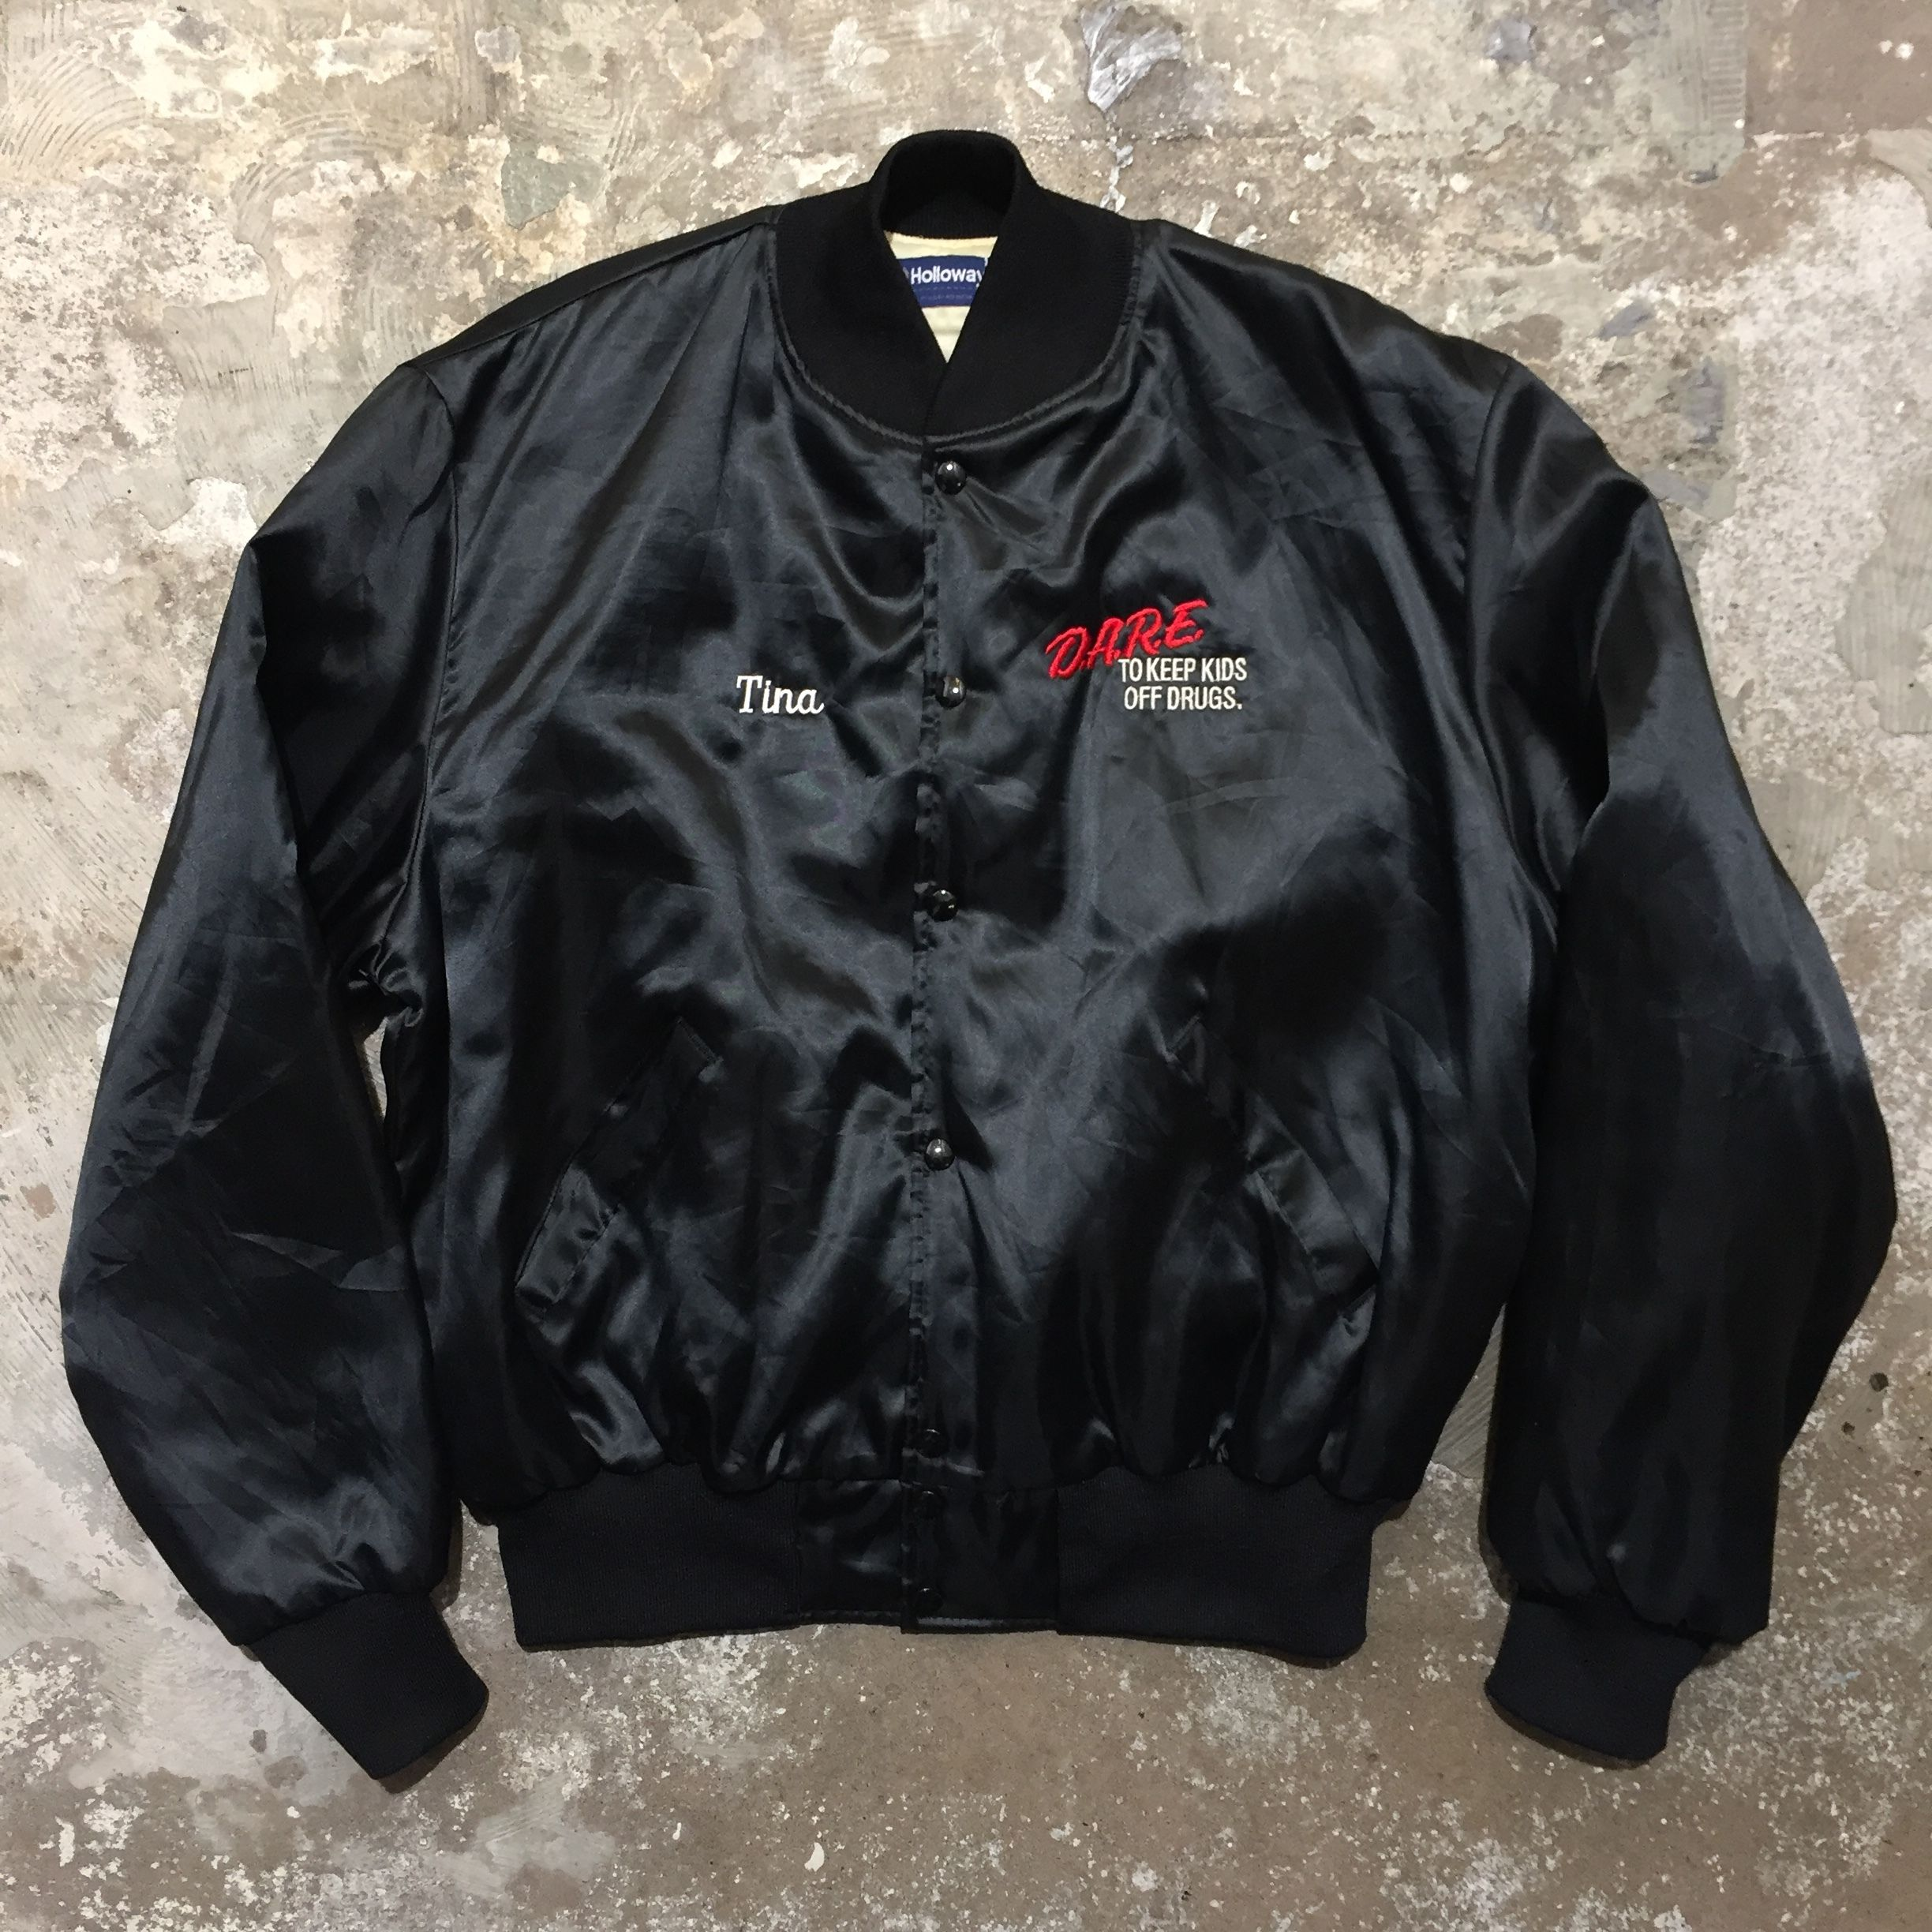 80's Holloway D.A.R.E. Nylon Varsity Jacket